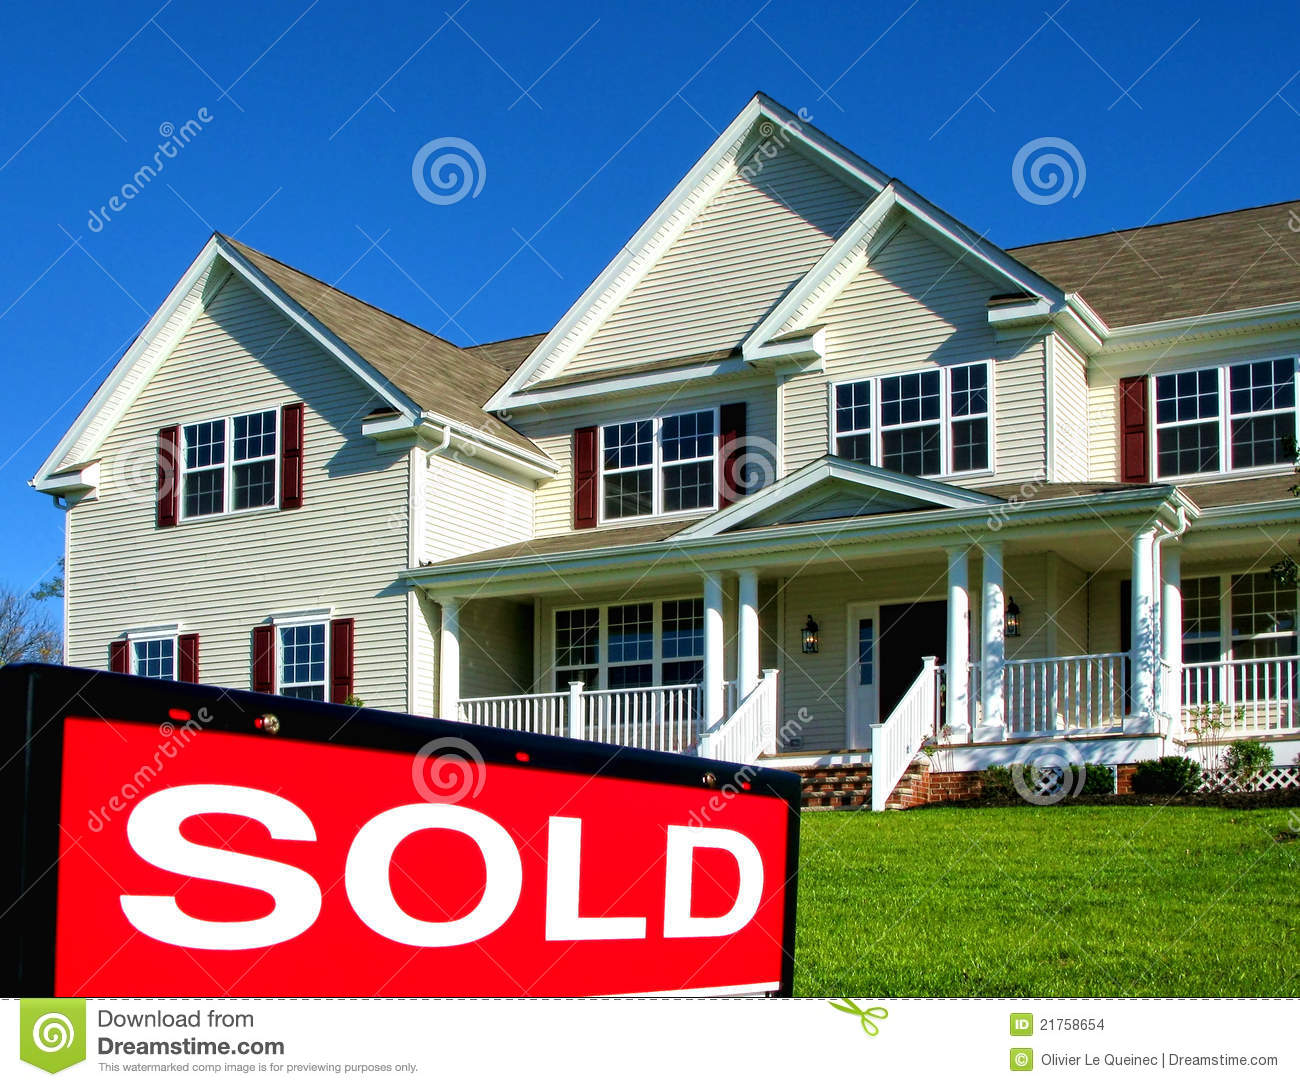 Real estate realtor sold sign and house for sale stock for Real house